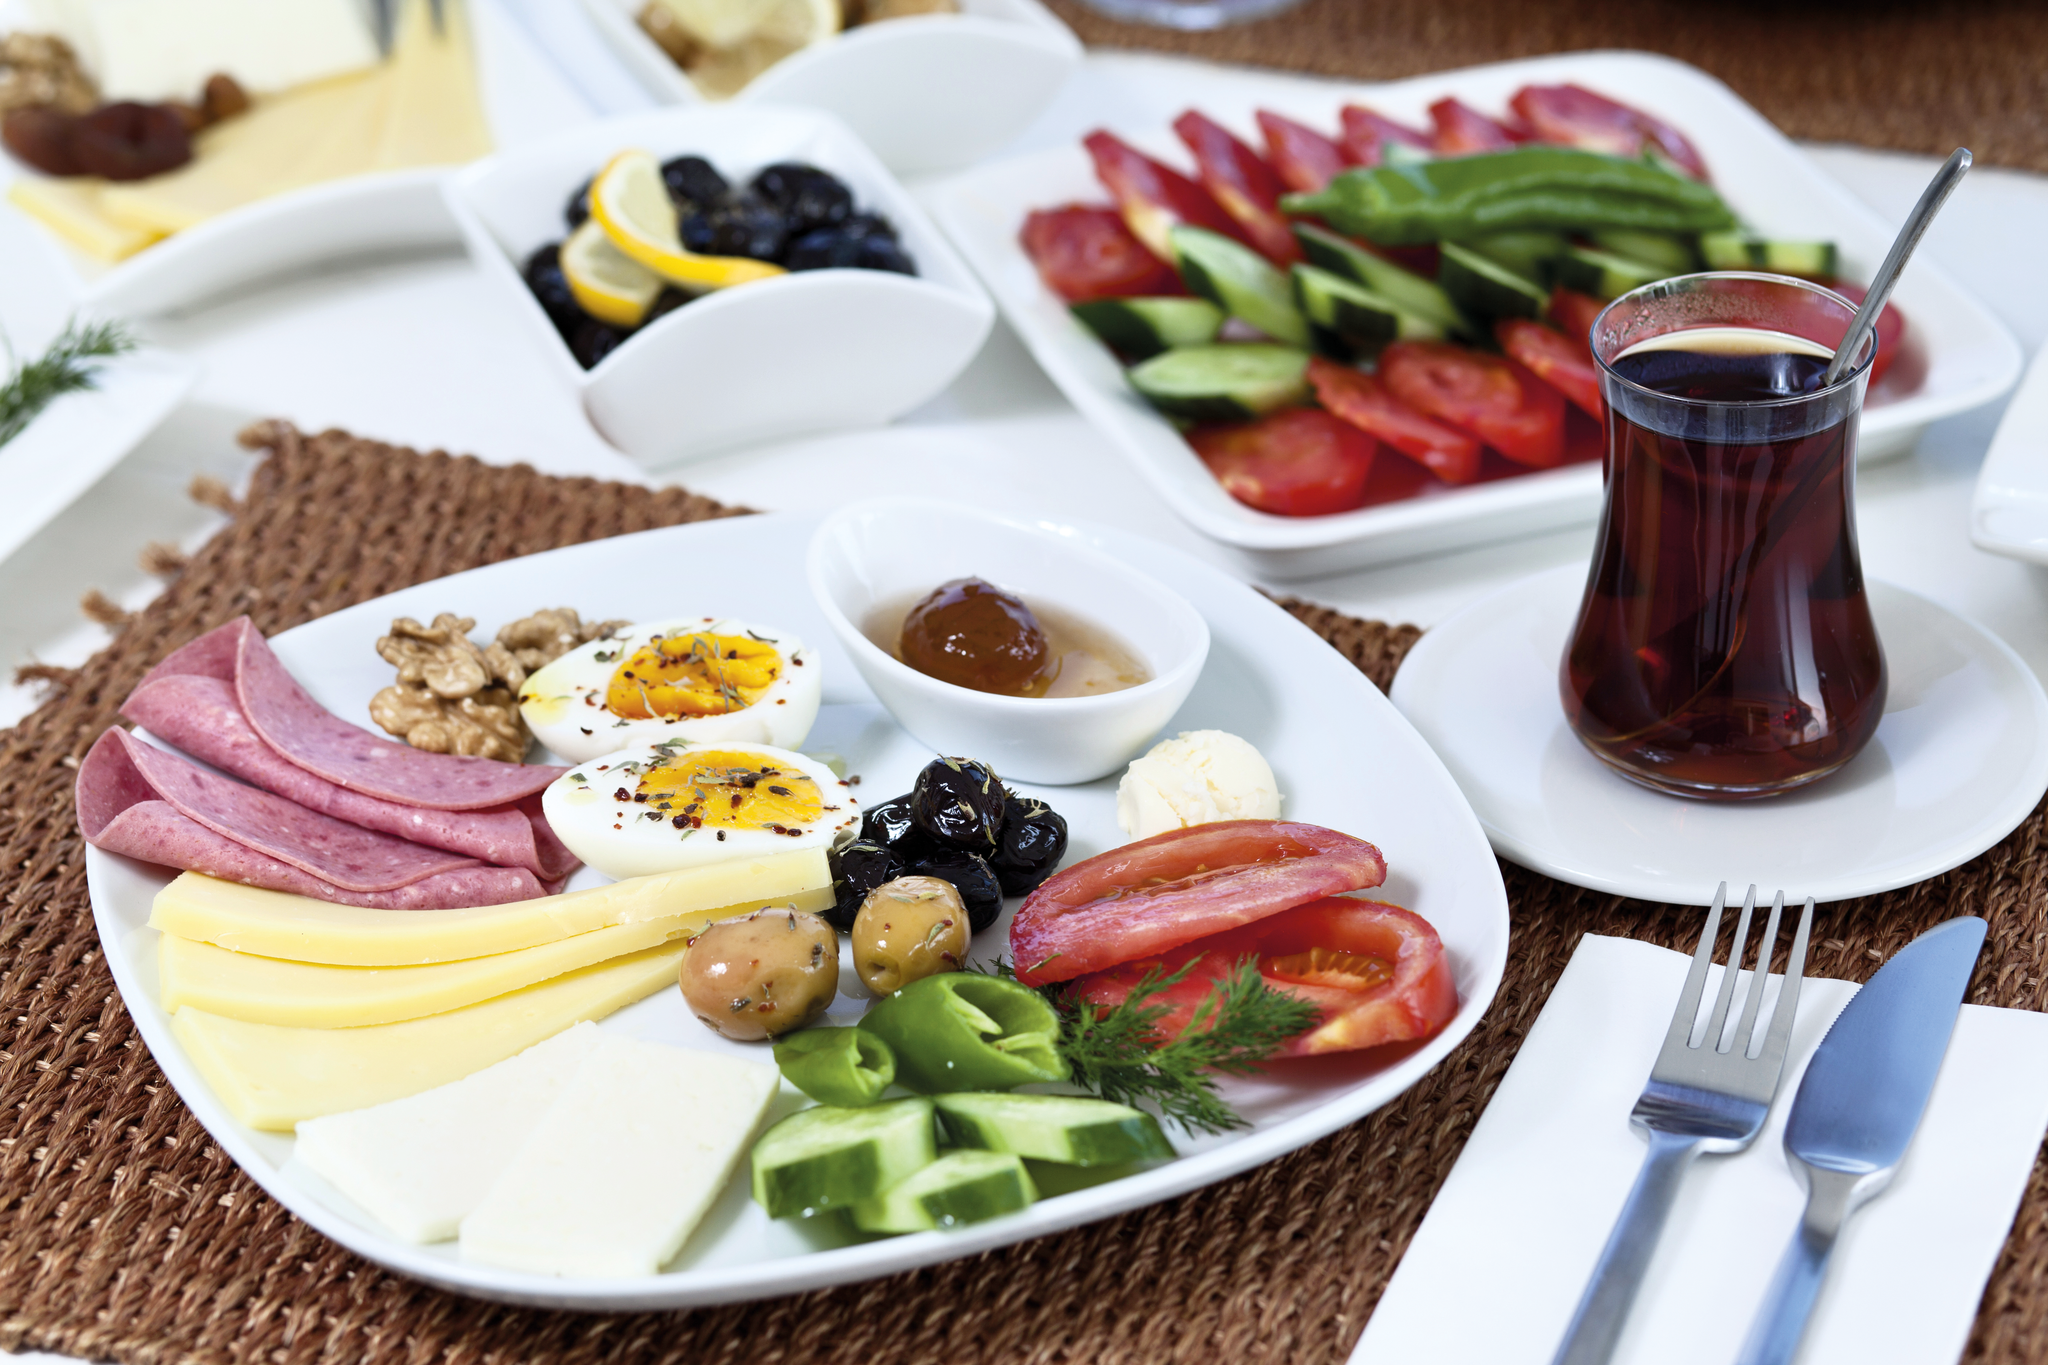 bigstock-Rich-and-delicious-breakfast-53530108_preview.png